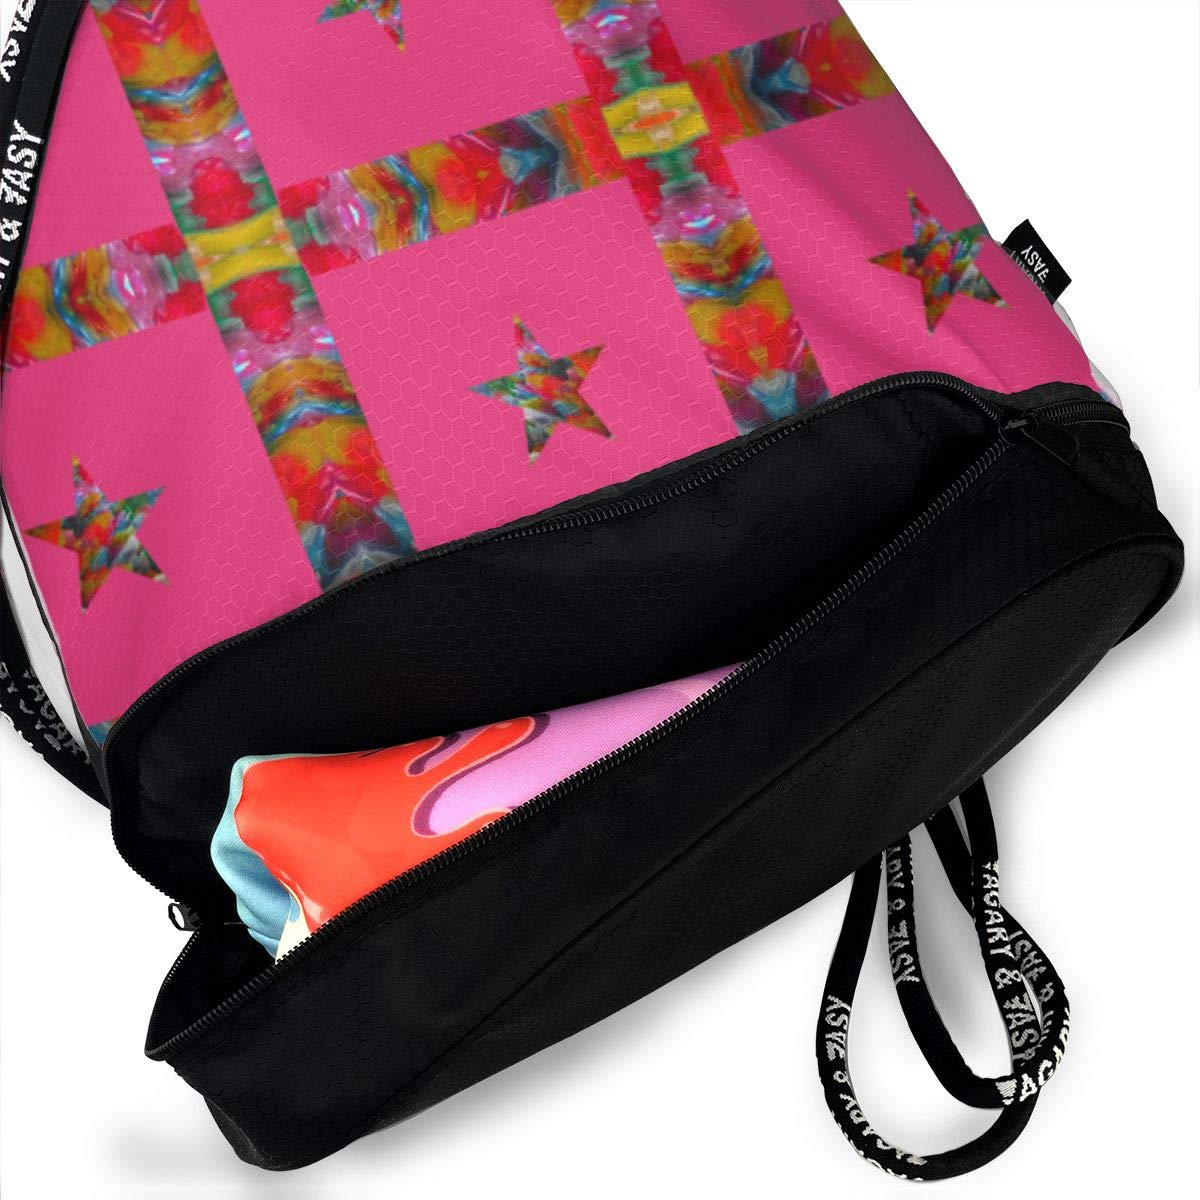 Star On Pink Drawstring Backpack Sports Athletic Gym Cinch Sack String Storage Bags for Hiking Travel Beach